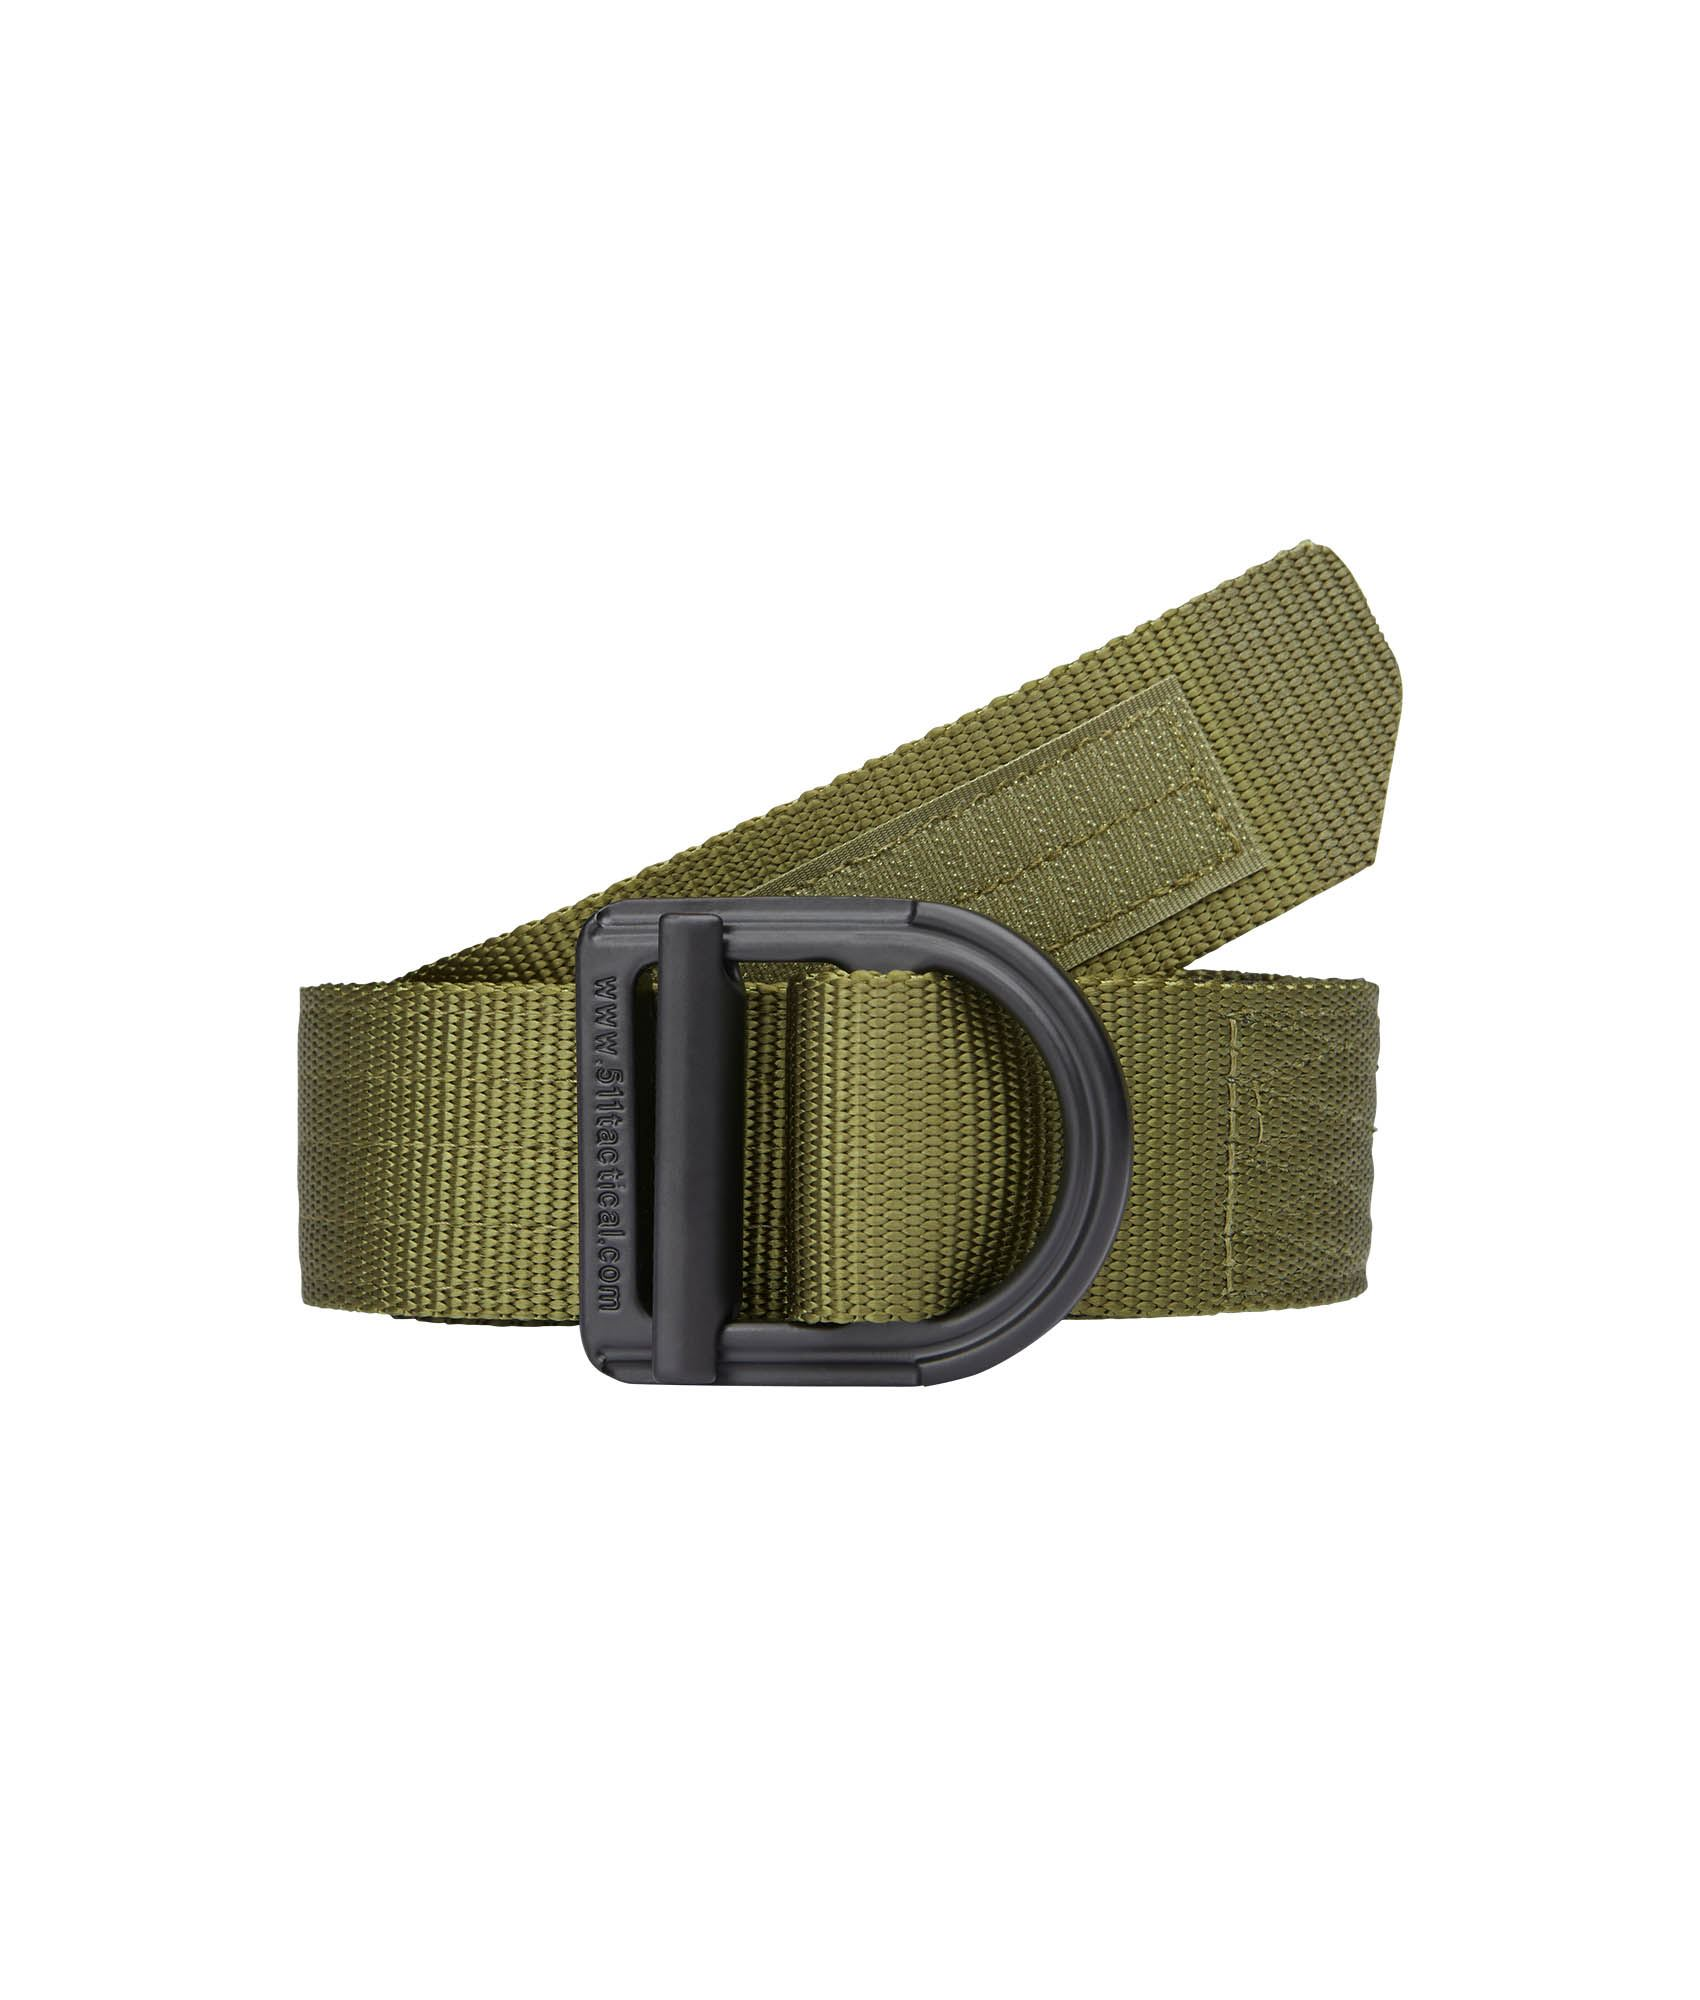 Trainer belt fra 5.11 Tactical